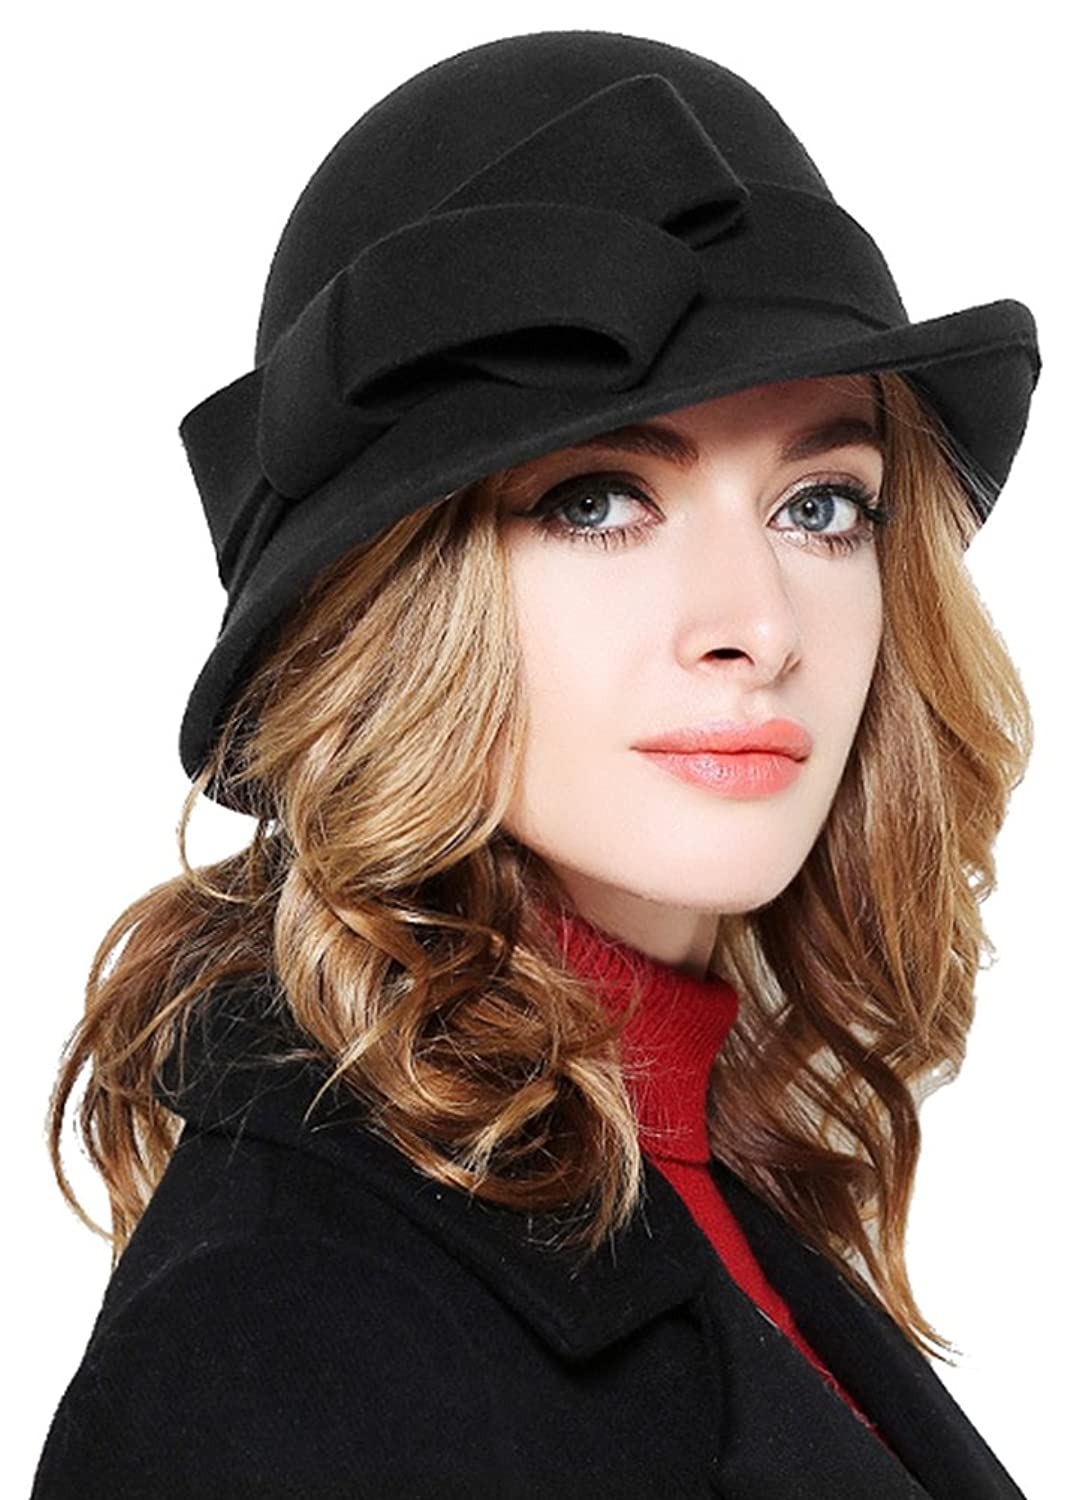 1920s Fashion & Clothing | Roaring 20s Attire Bellady Women Solid Color Winter Hat 100% Wool Cloche Bucket with Bow Accent $21.99 AT vintagedancer.com